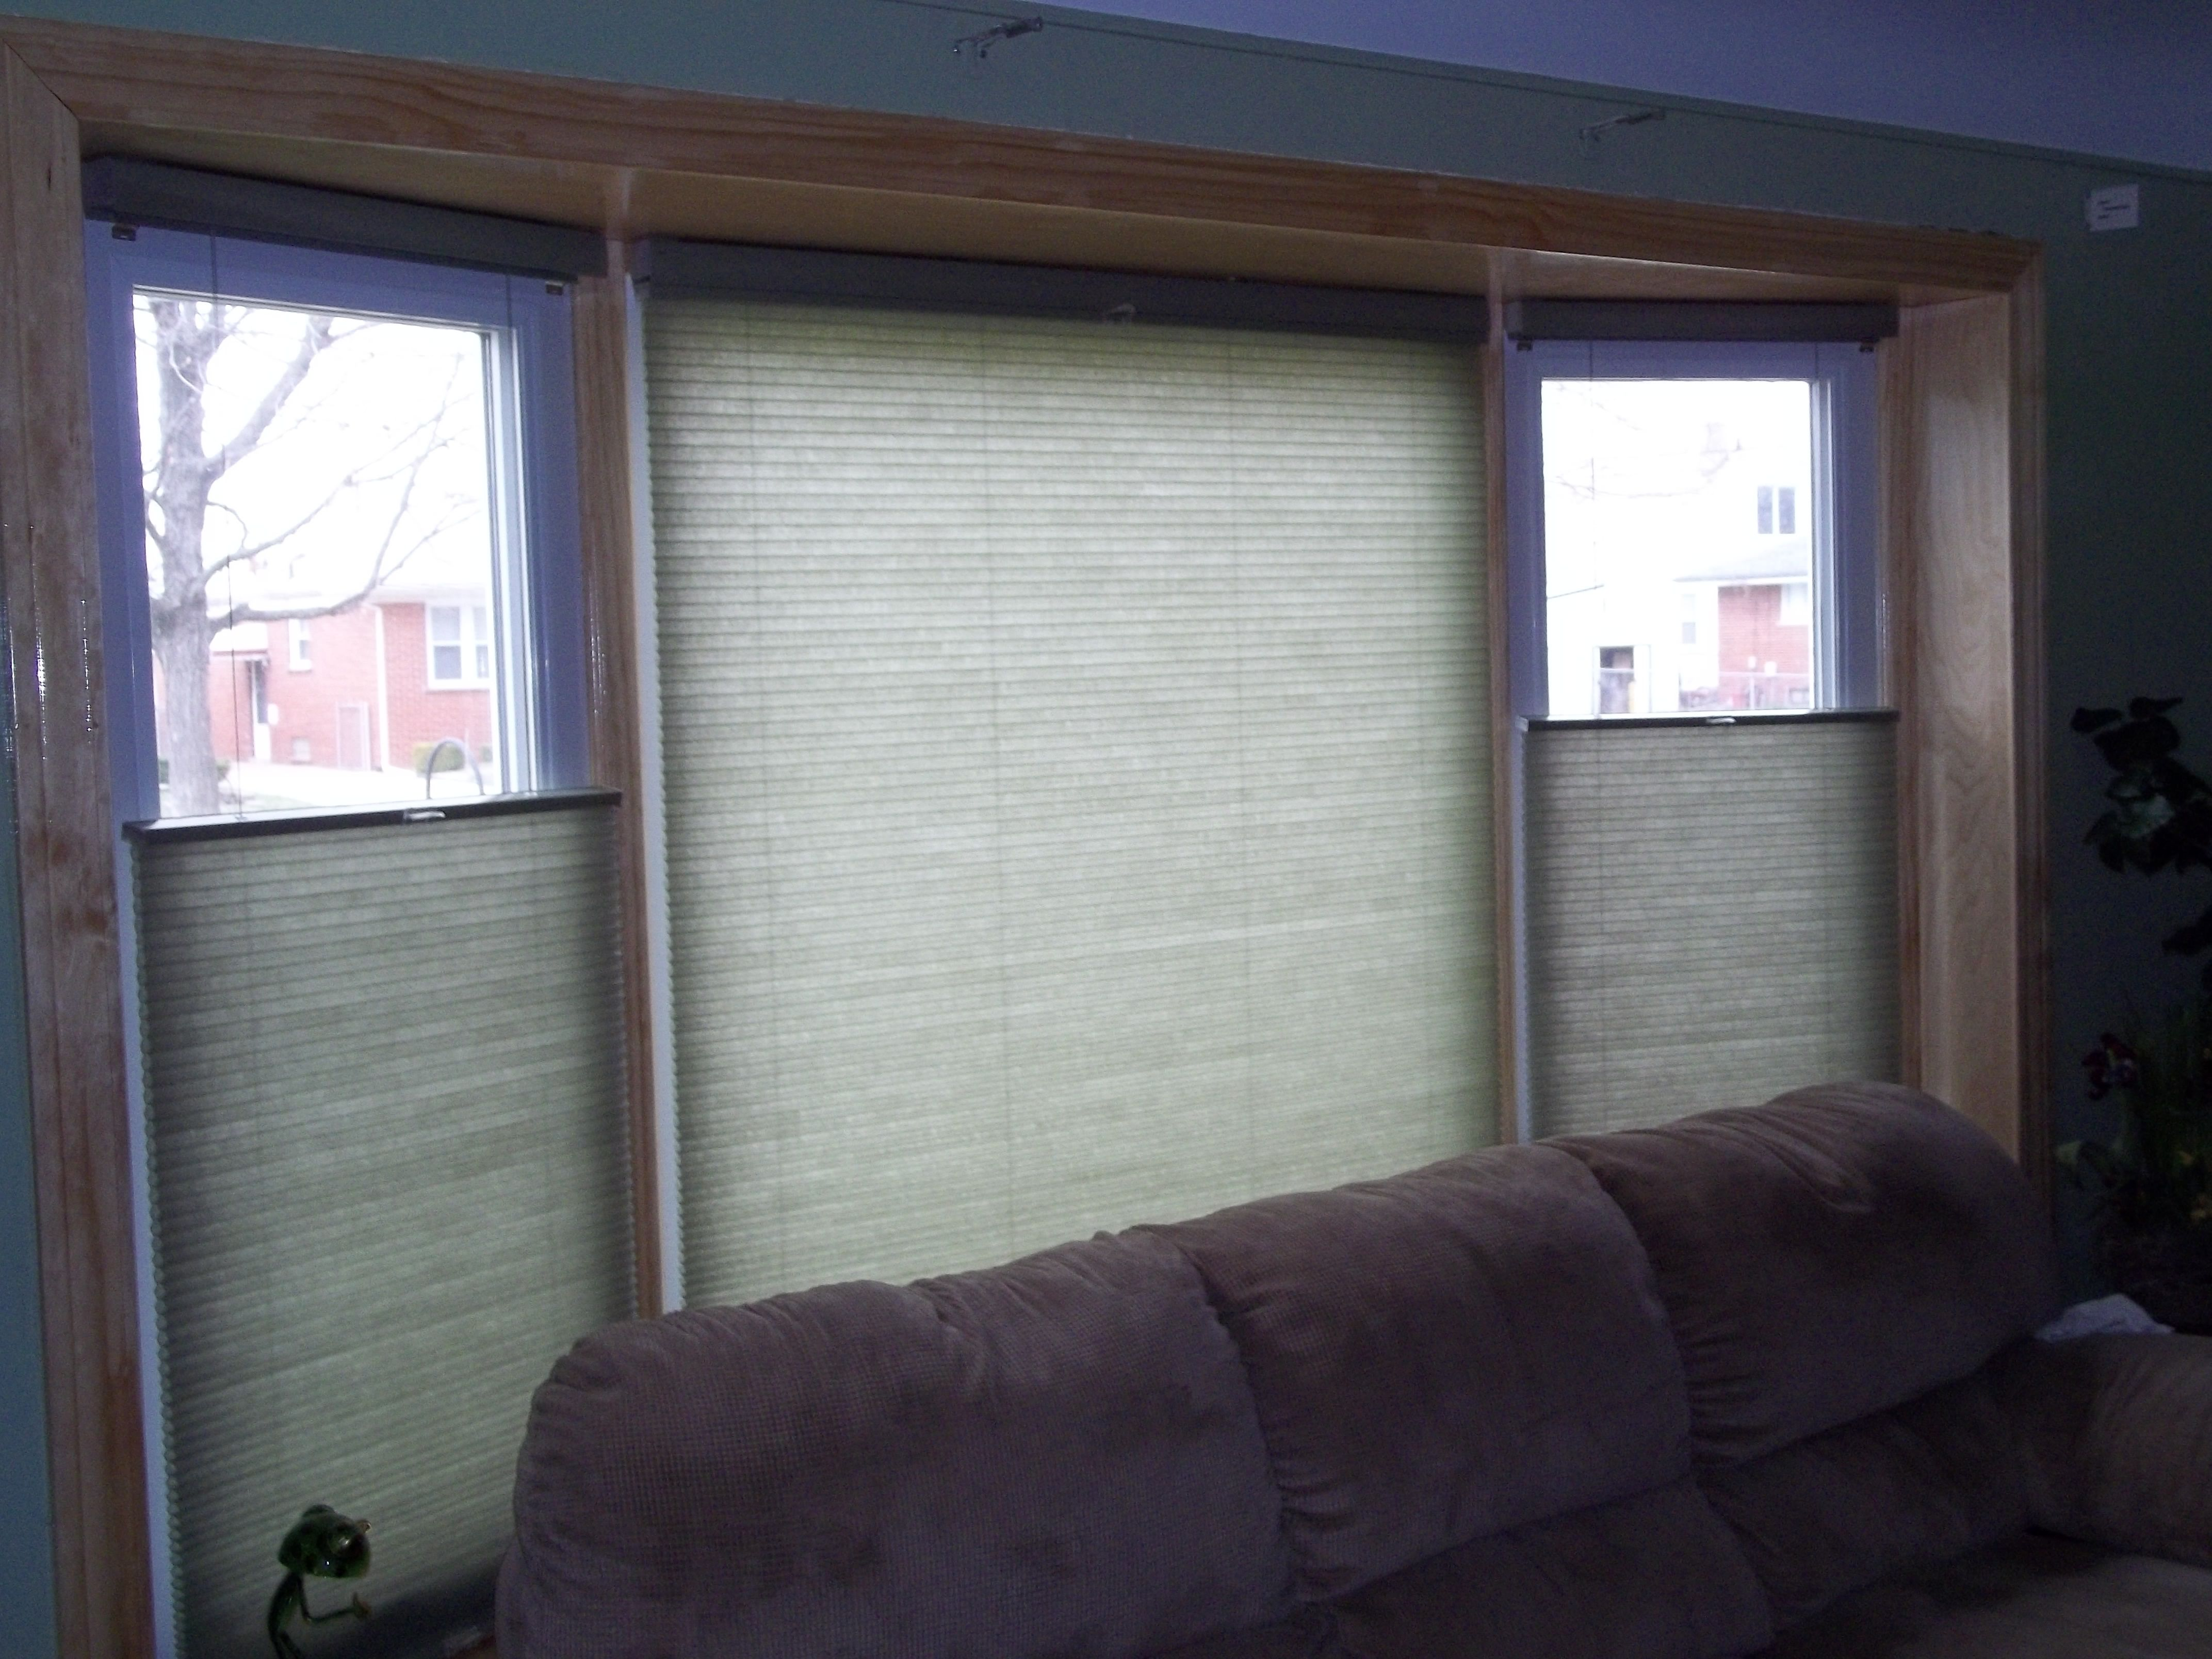 selectblinds axd image select blinds com blog pin picture